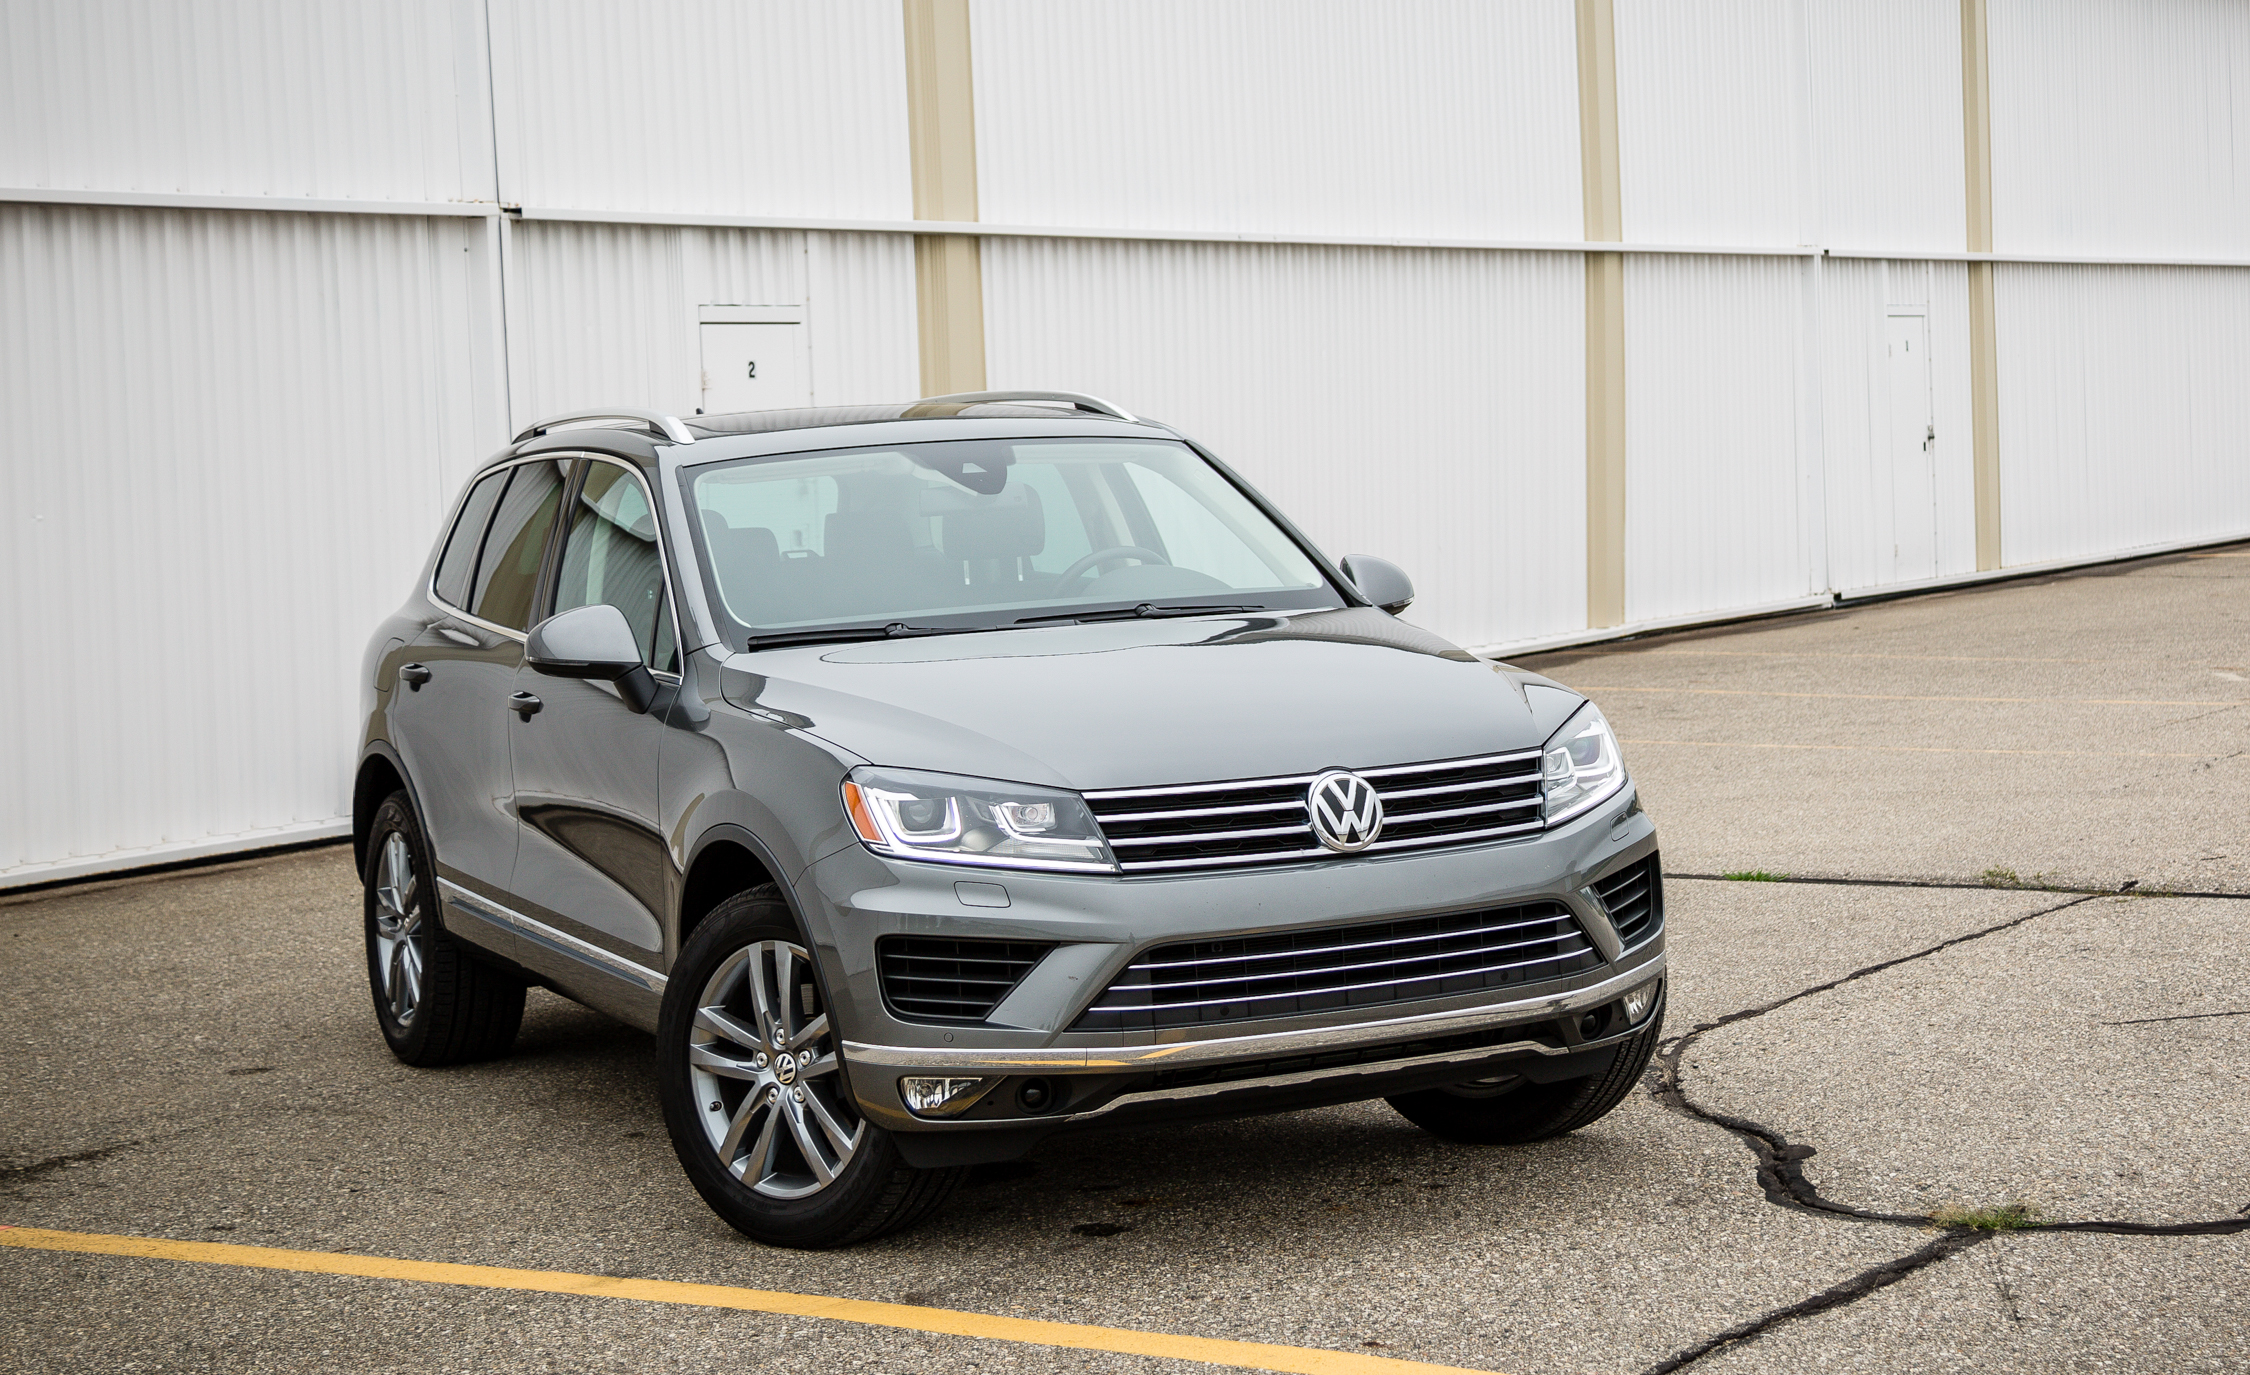 2016 Volkswagen Touareg Exterior (Photo 2 of 16)